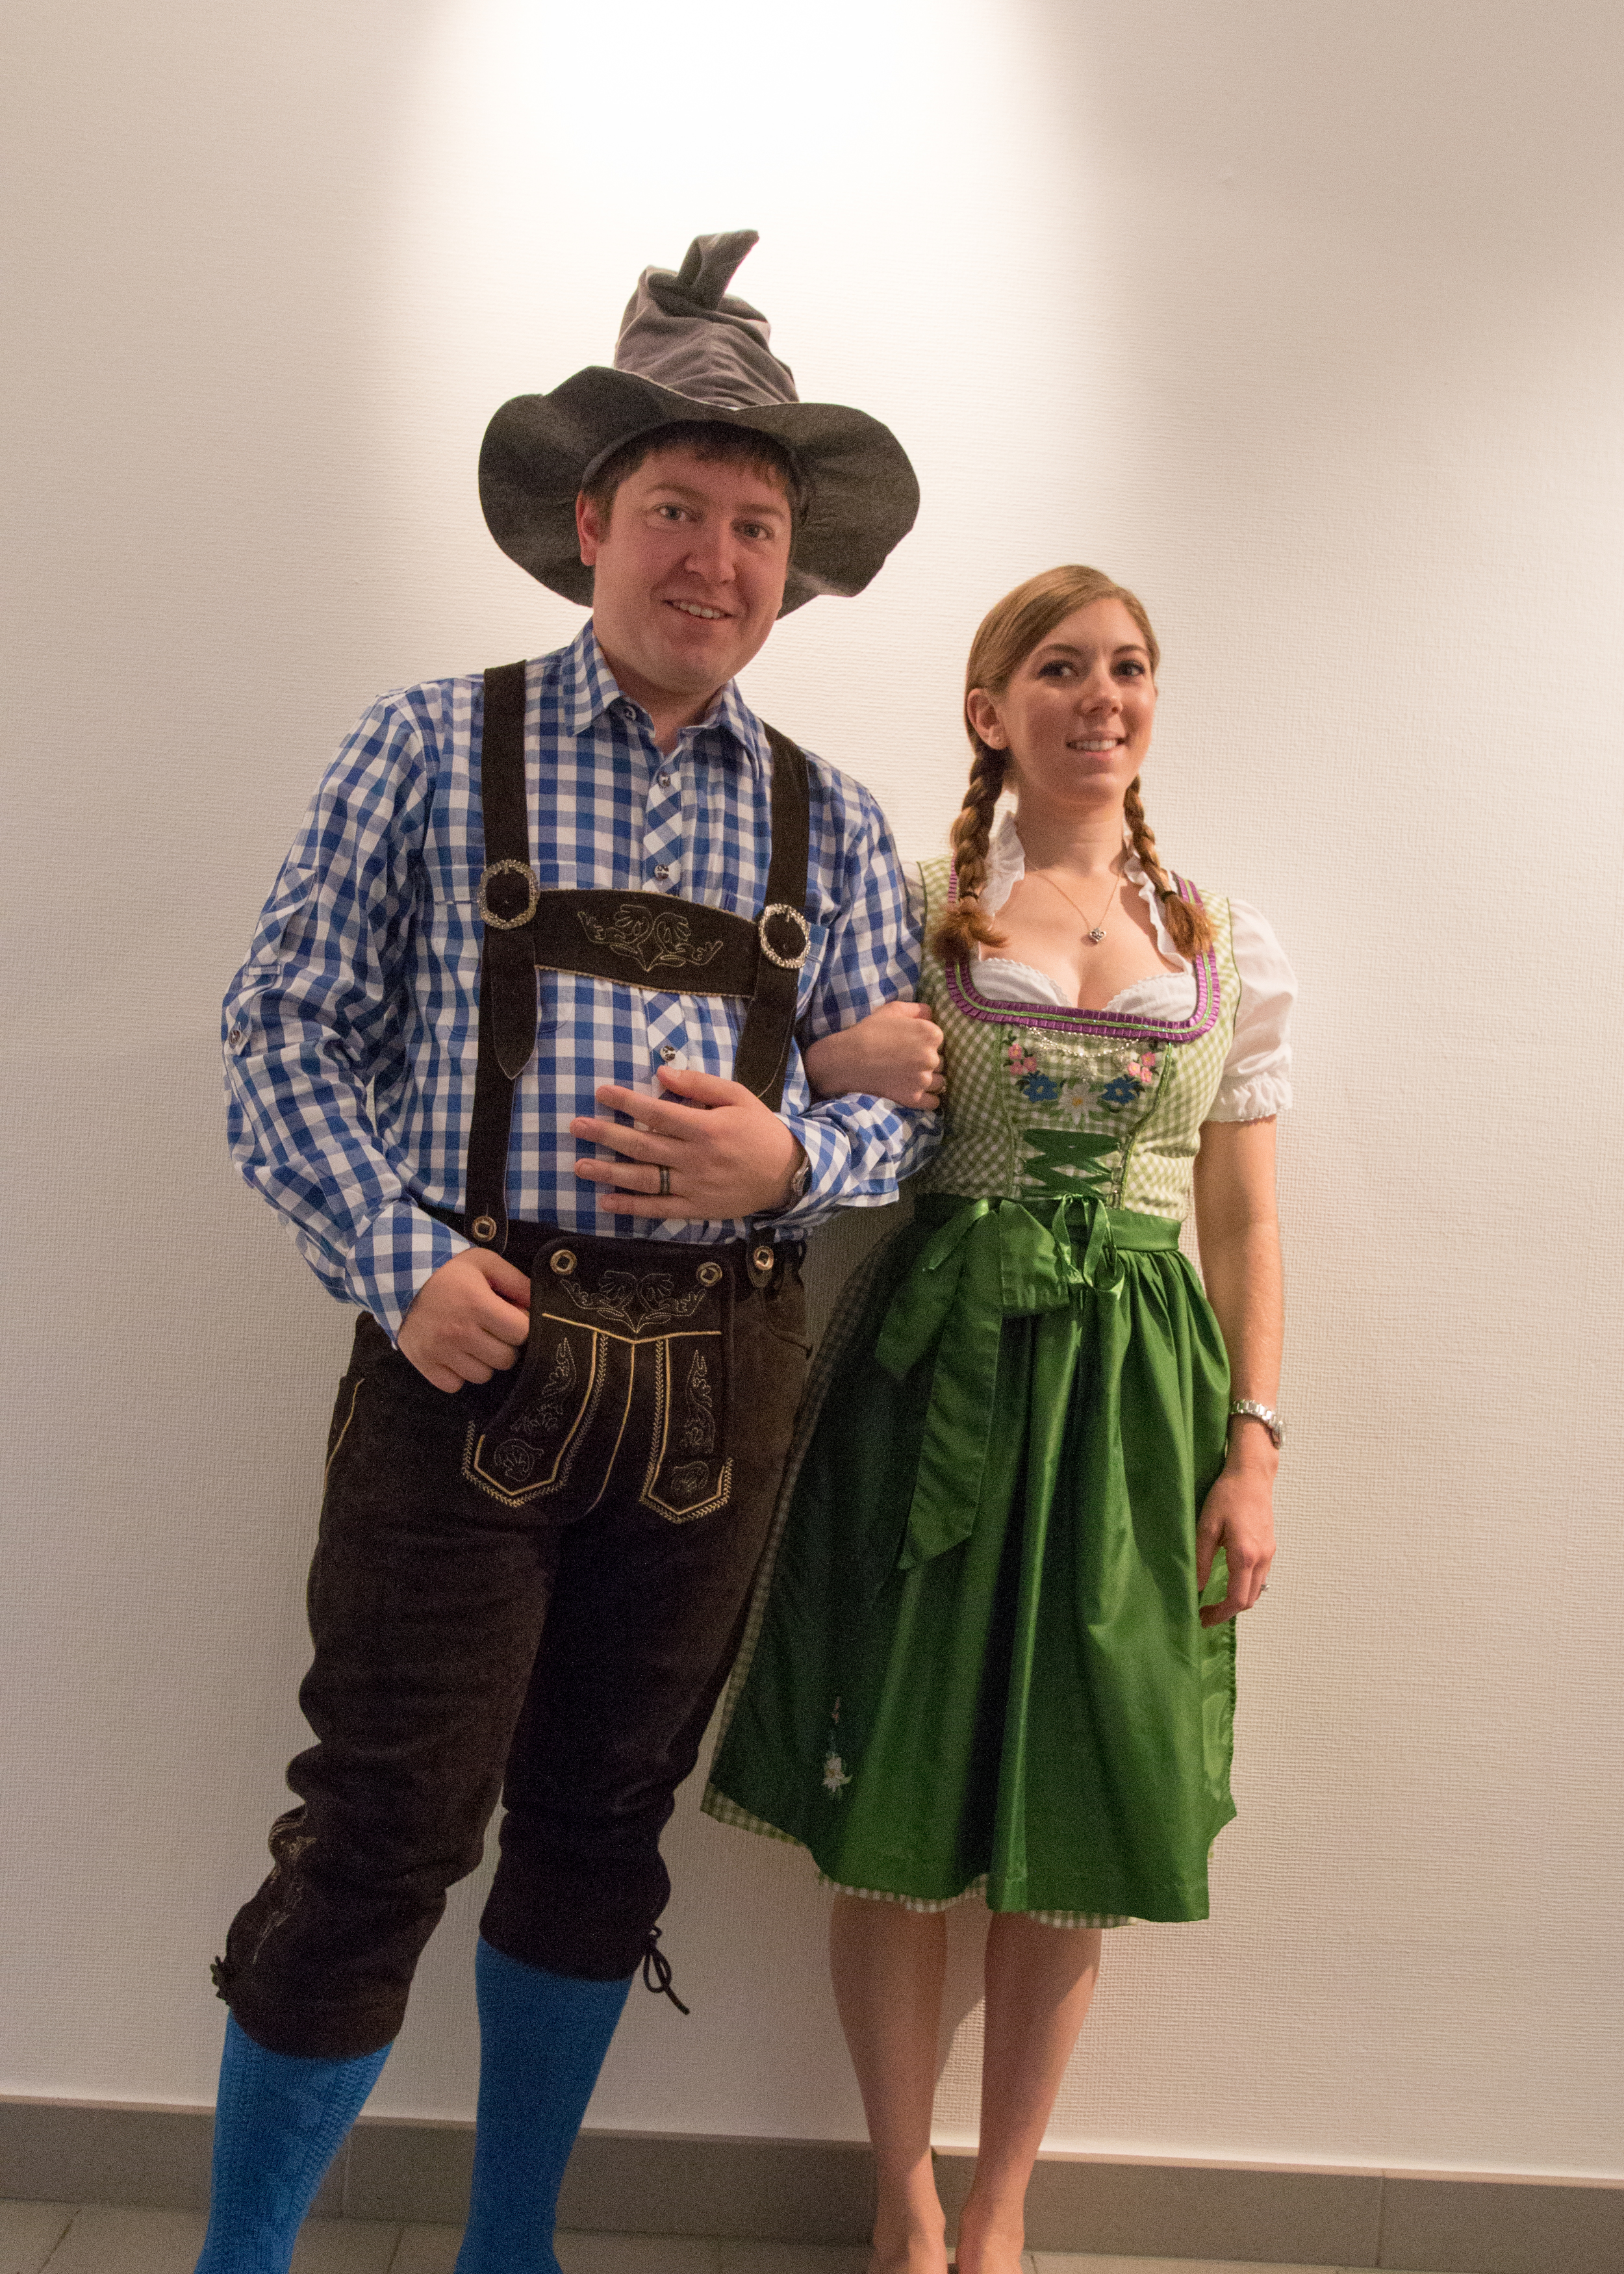 Tried to grab a quick selfie in our tracht before heading out to get on the tram to Heidelberg.